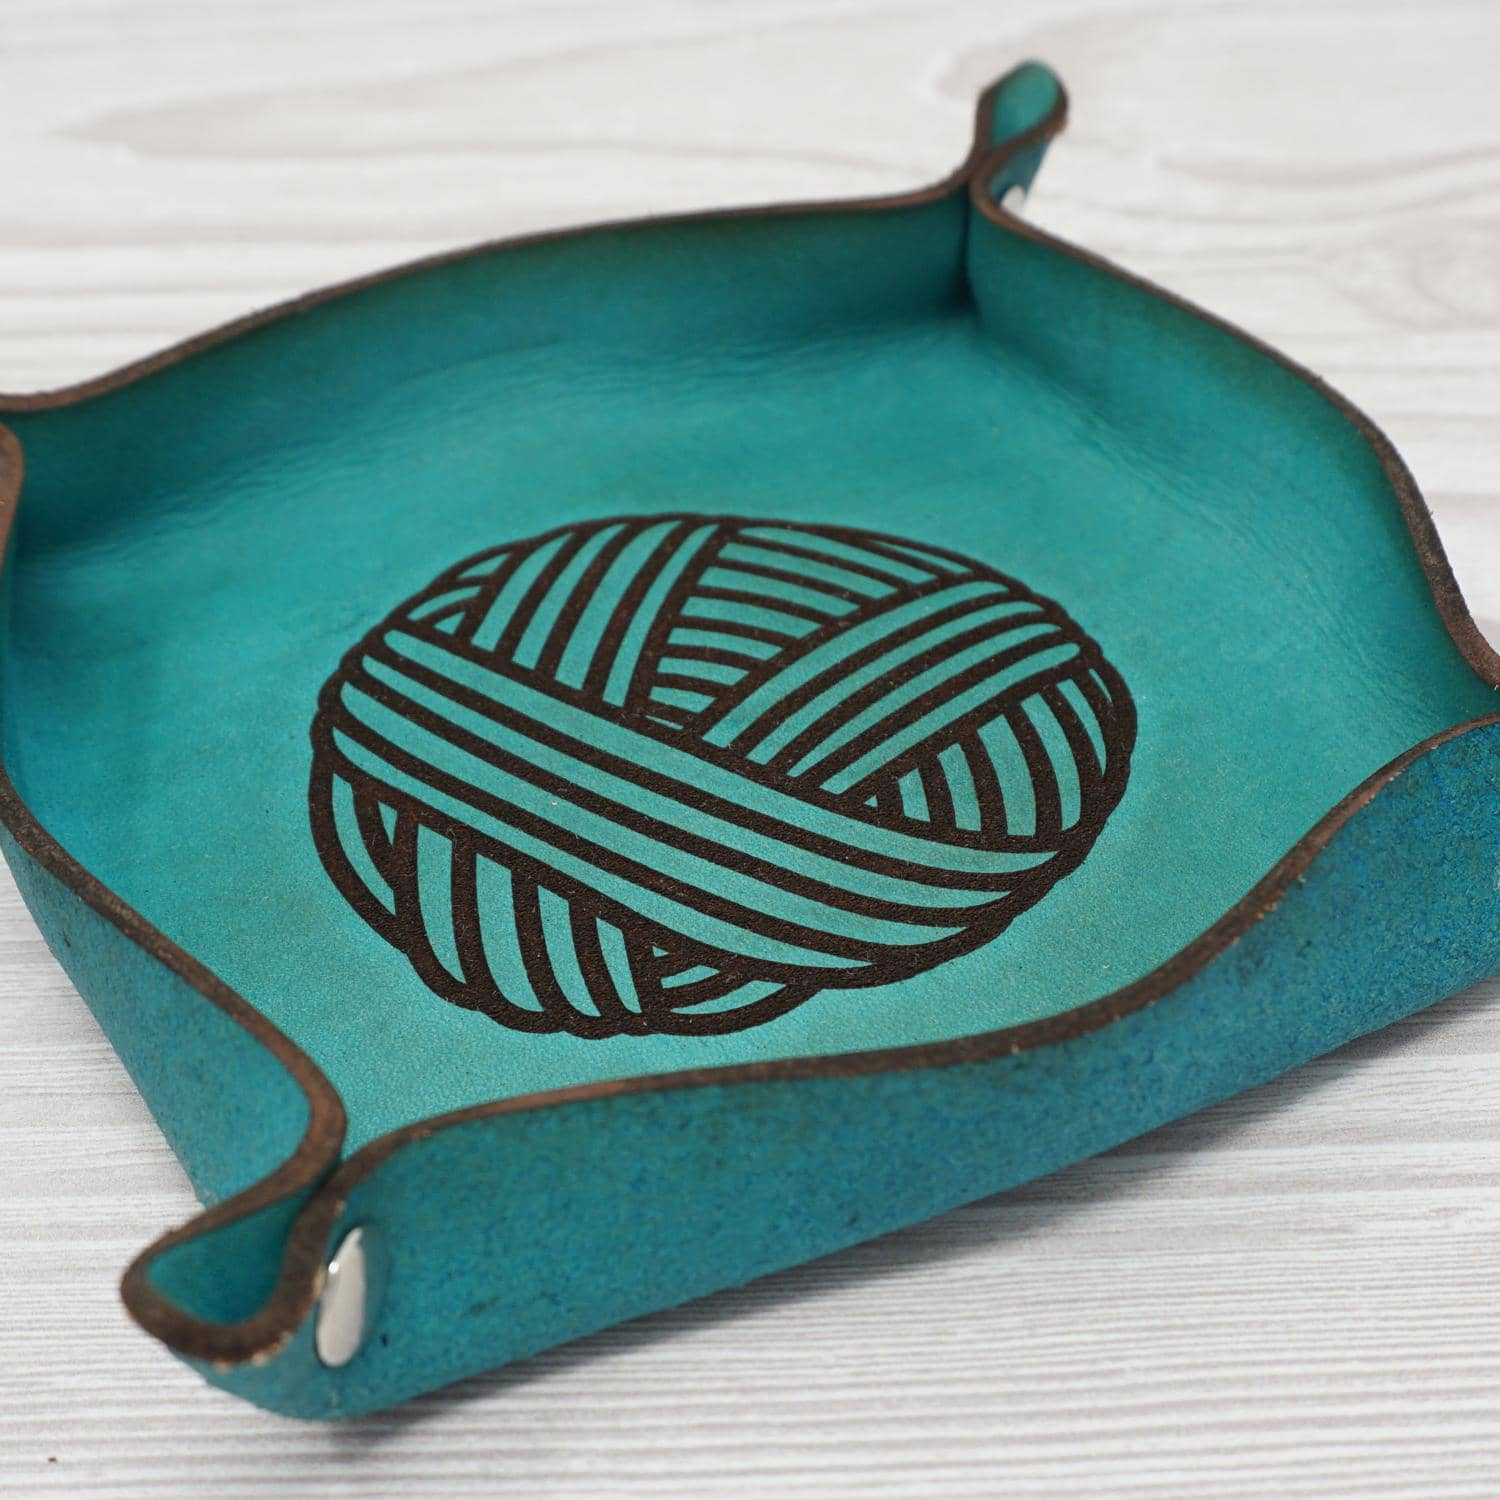 Birdie Parker Designs - Leather Valet Tray - shown in Turquoise colour. There is a ball of wool laser etched into the leather | Yarn Worx